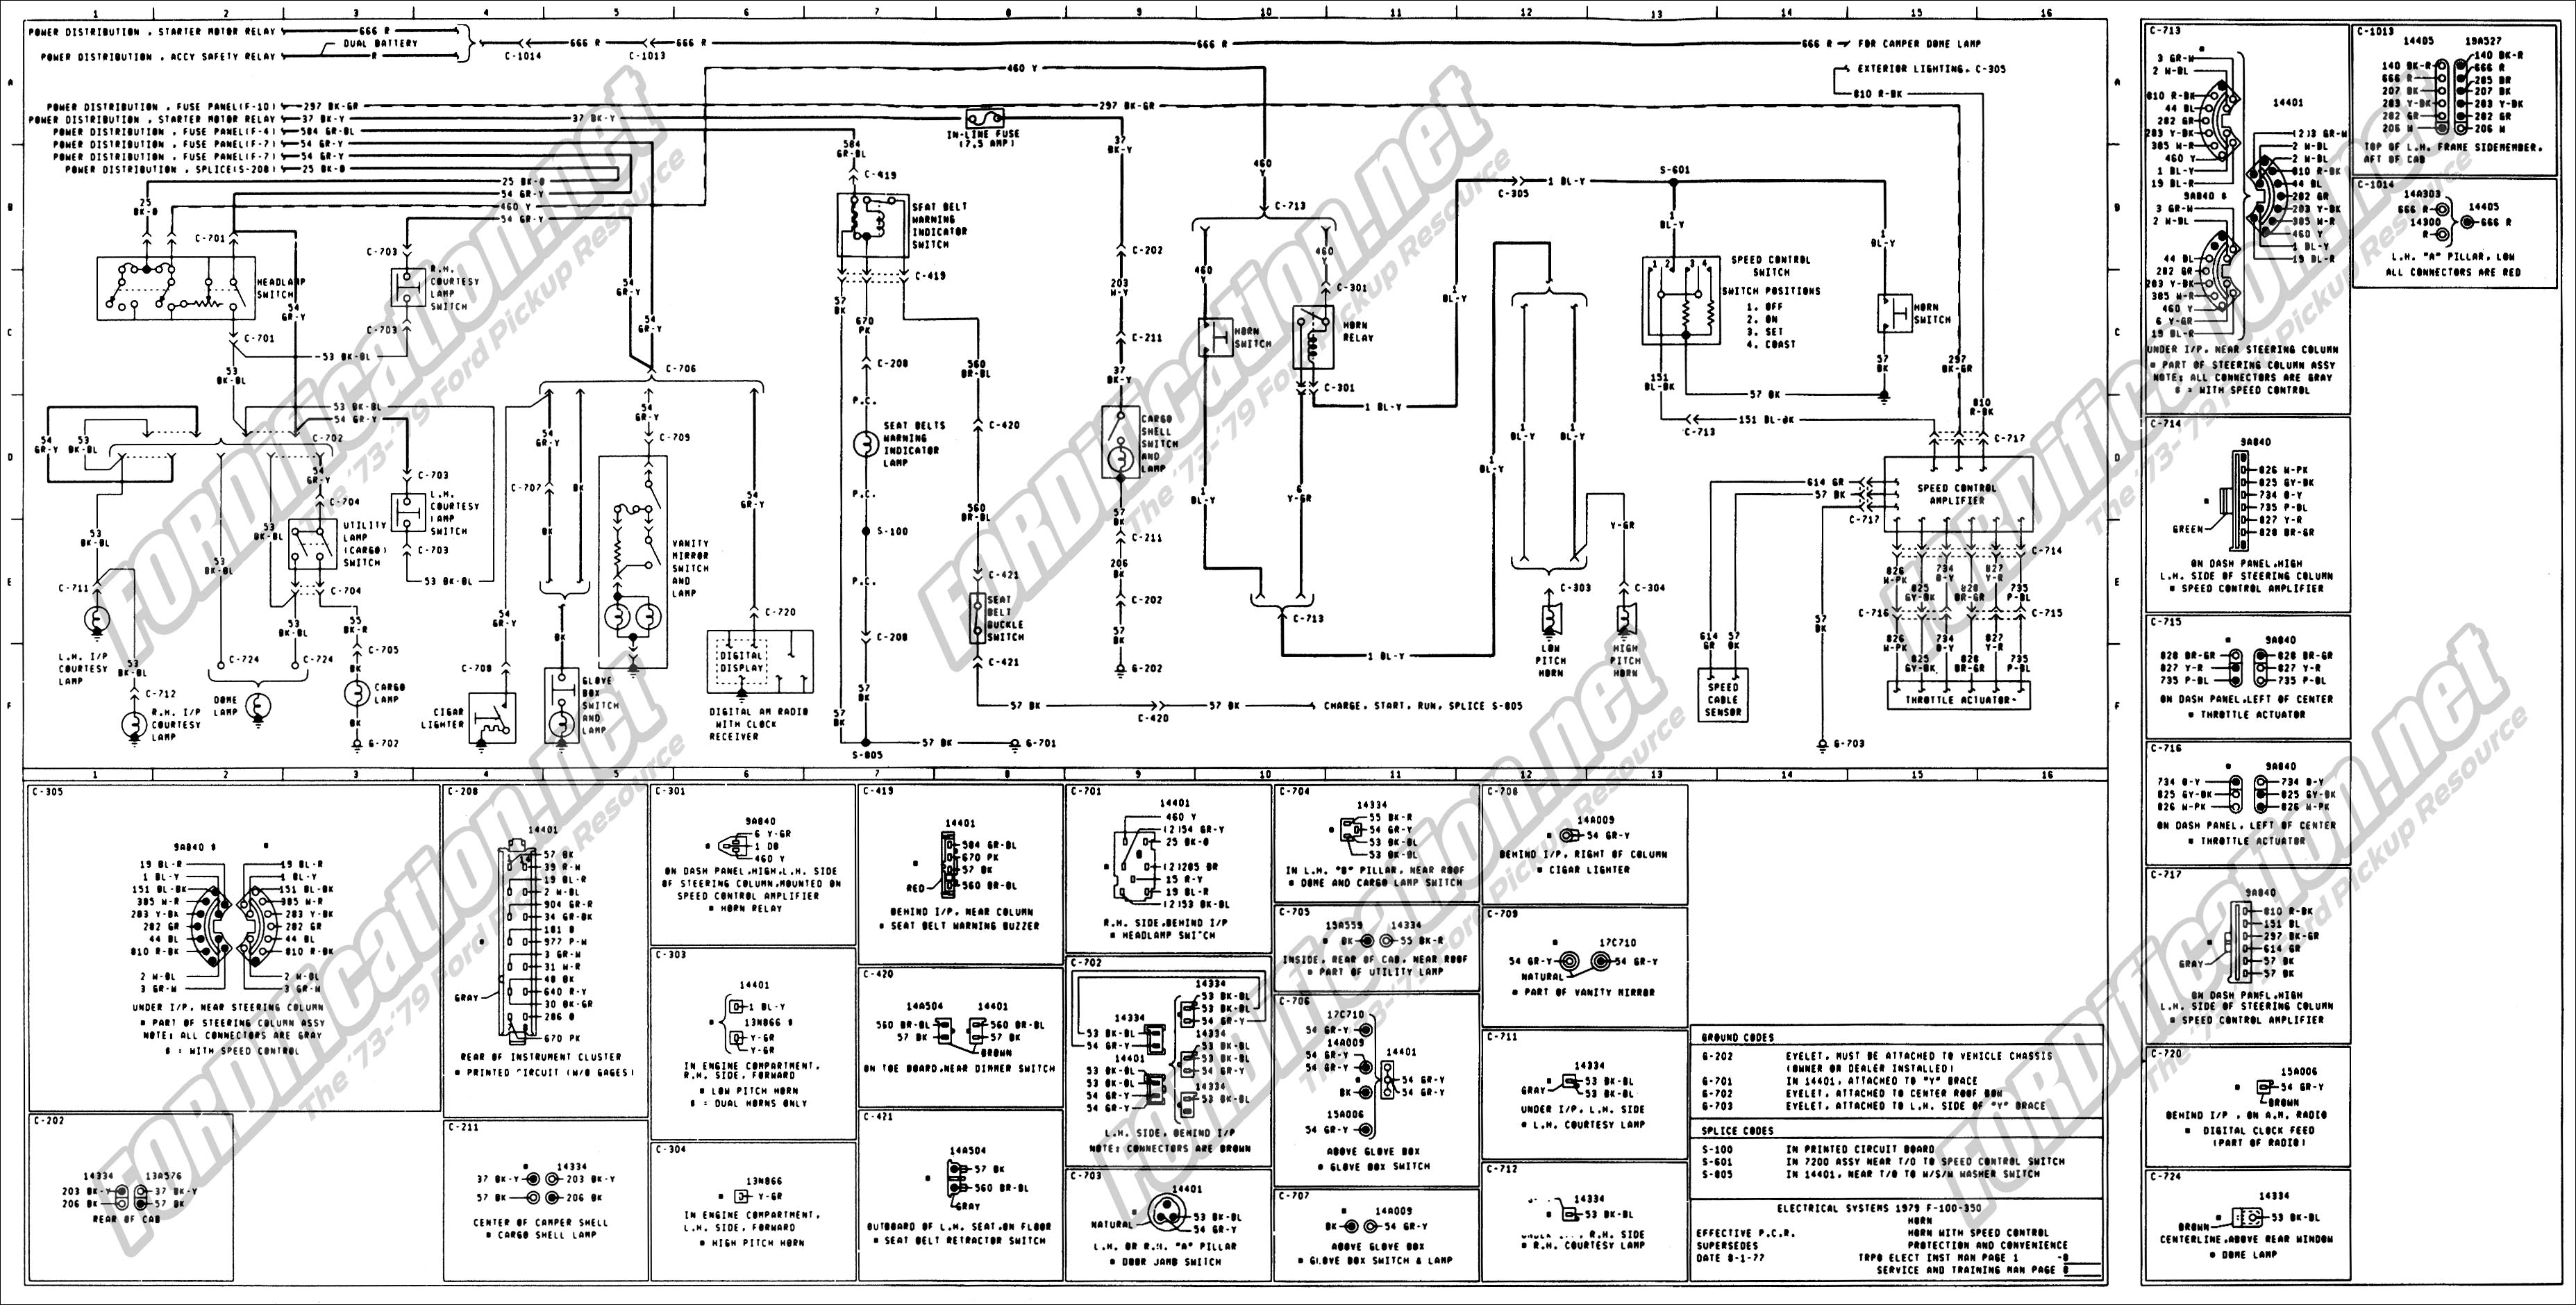 1973 1979 ford truck wiring diagrams schematics fordification net rh fordification net 1977 ford f150 wiring diagram 1979 ford f150 wiring diagram free